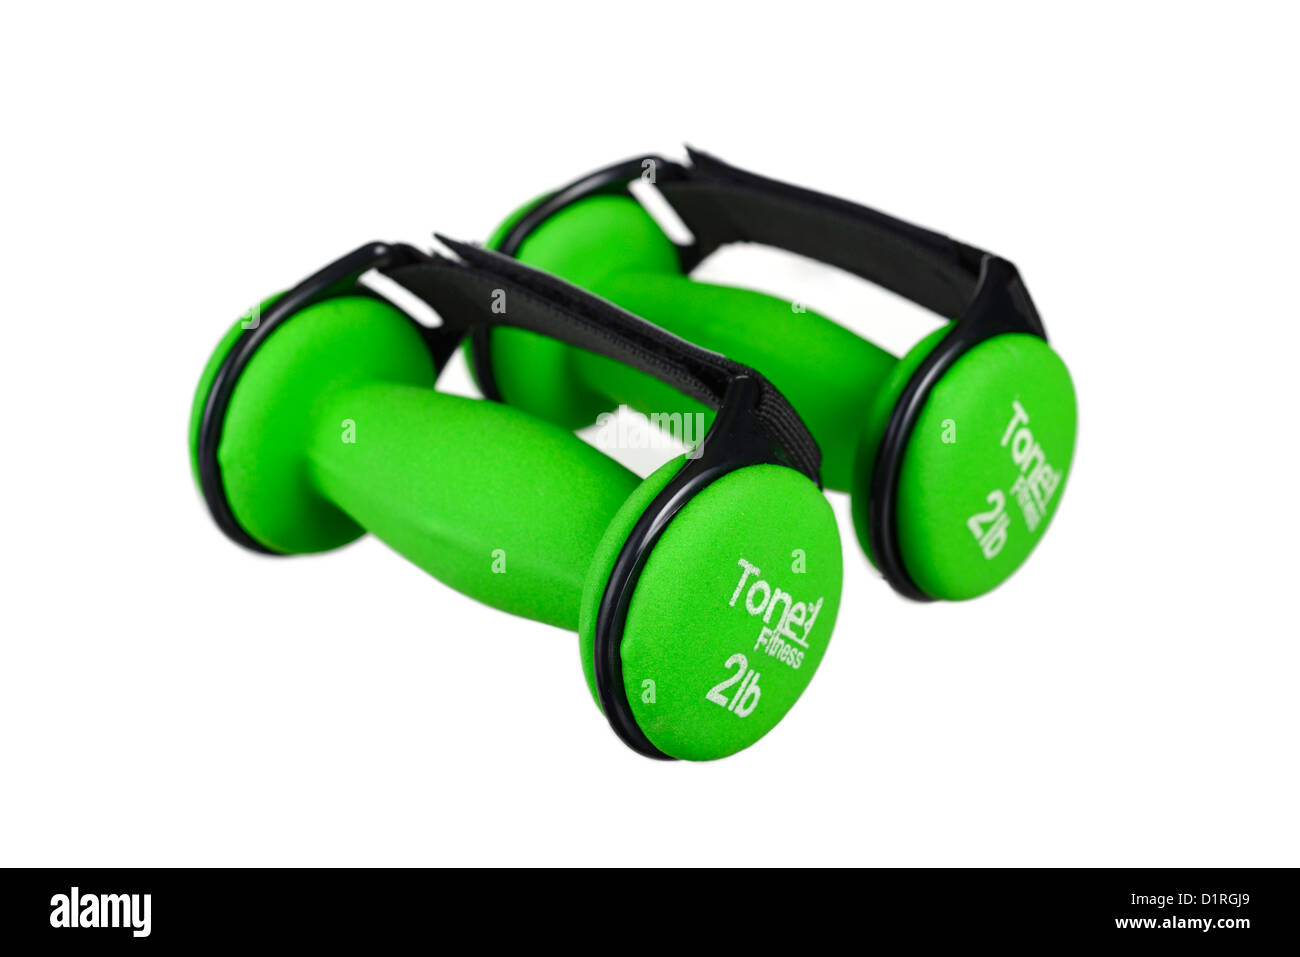 Dumbbells, tone fitness, walking fitness dumbbells with adjustable straps - Stock Image